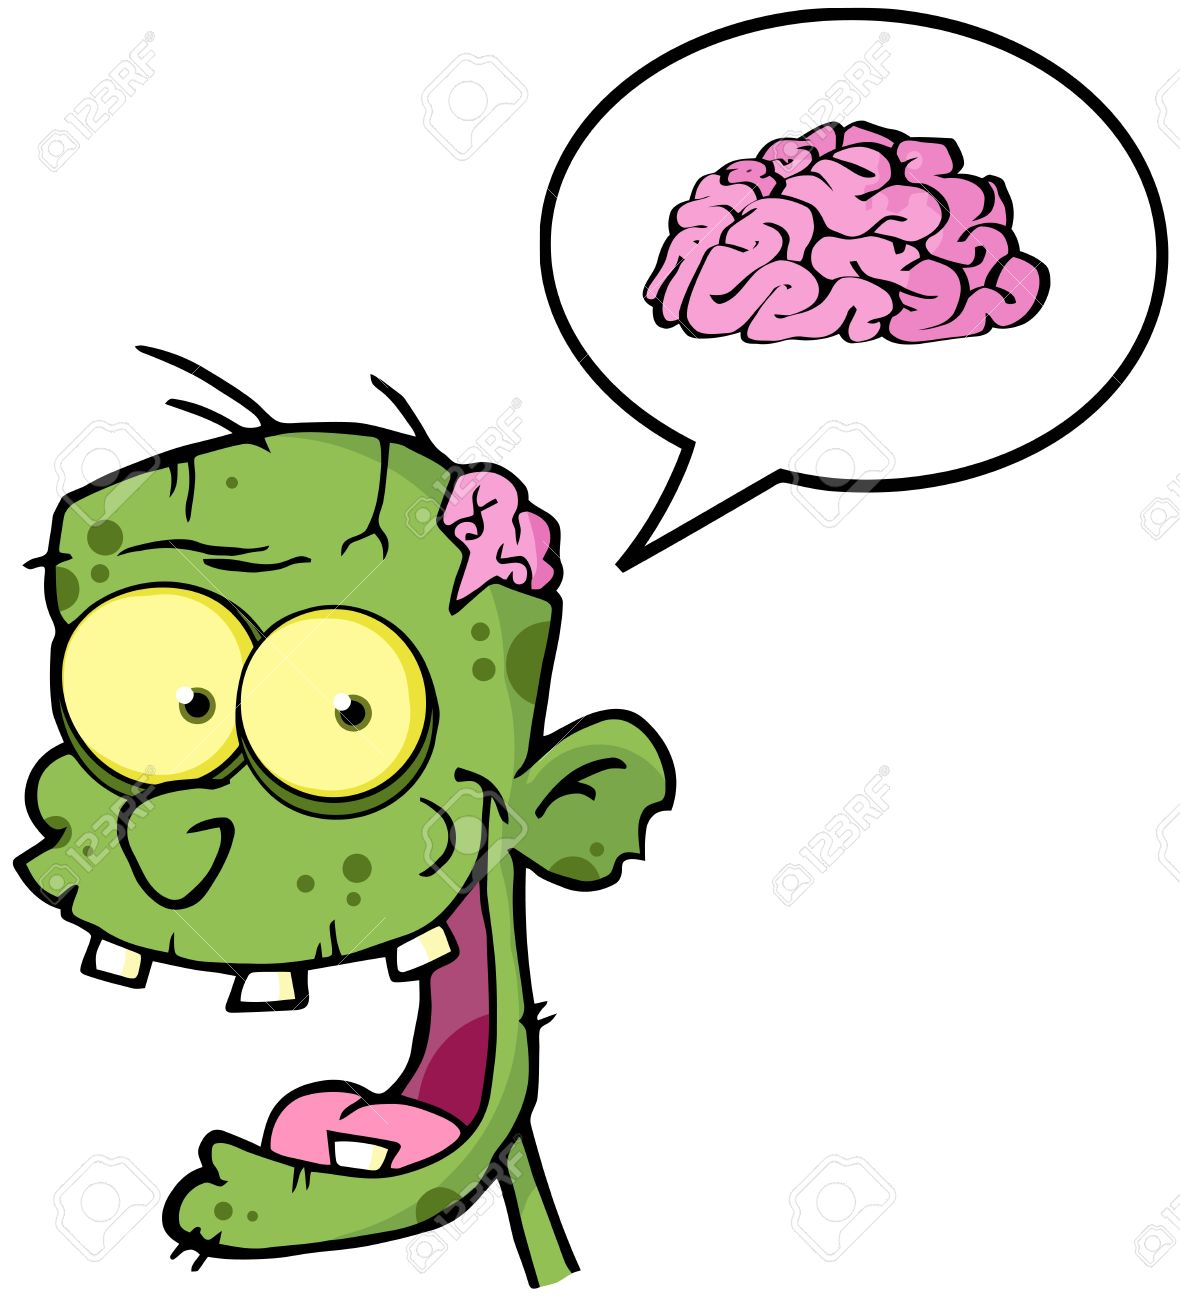 Frankenstein clipart cartoon Cliparts Clipart Brain Brain Zombie